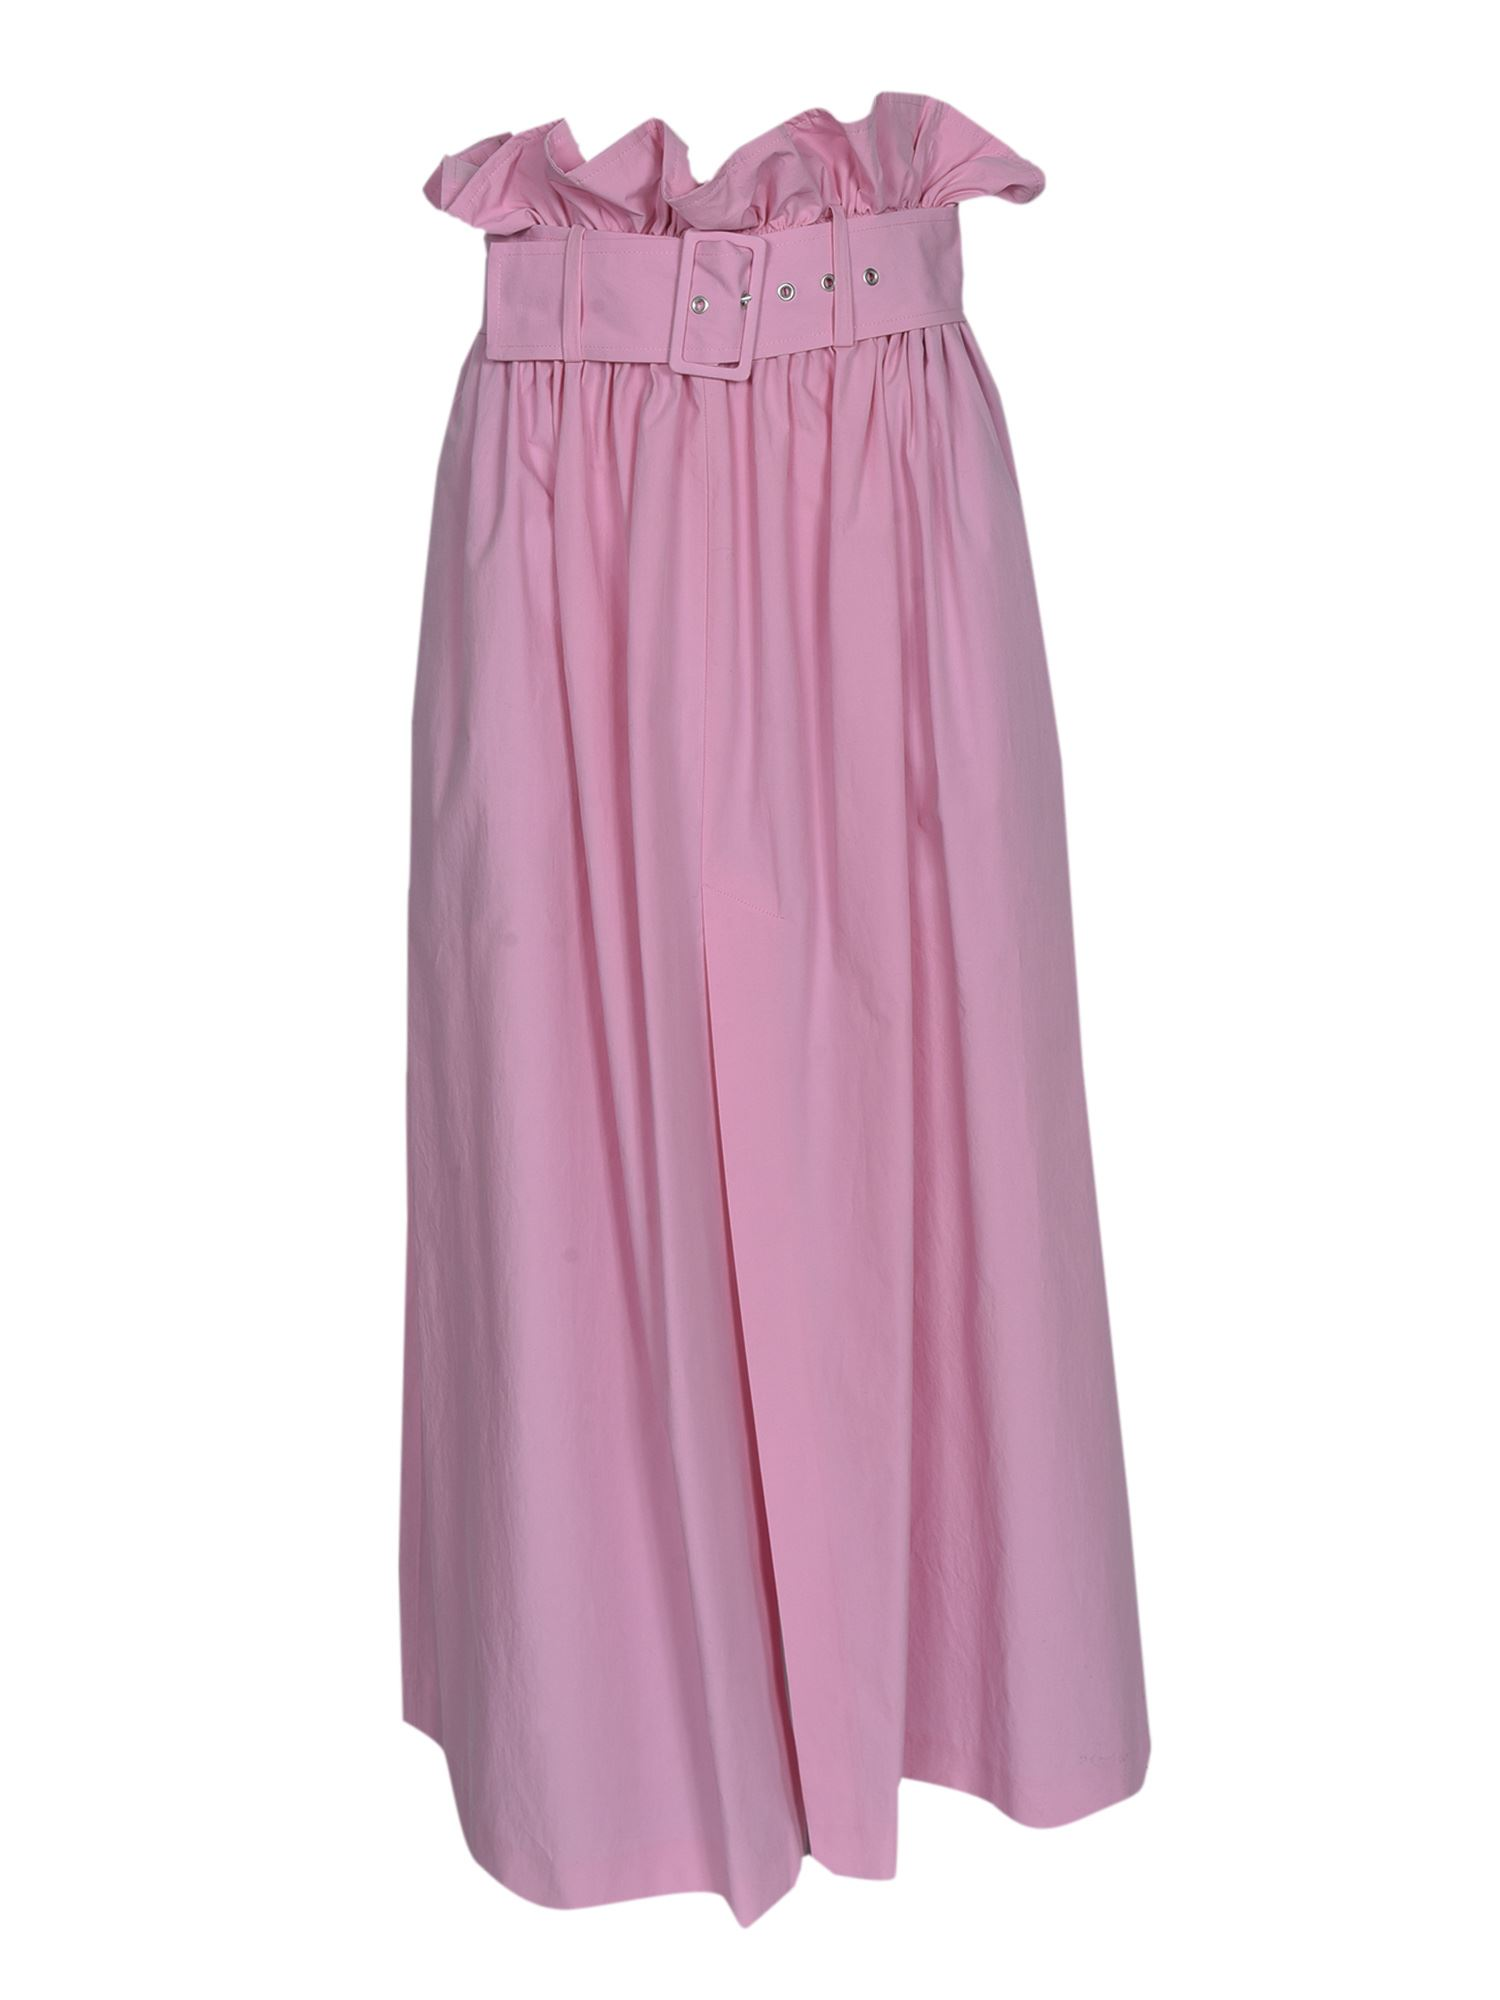 Msgm LONG GATHERED WAIST SKIRT IN PINK